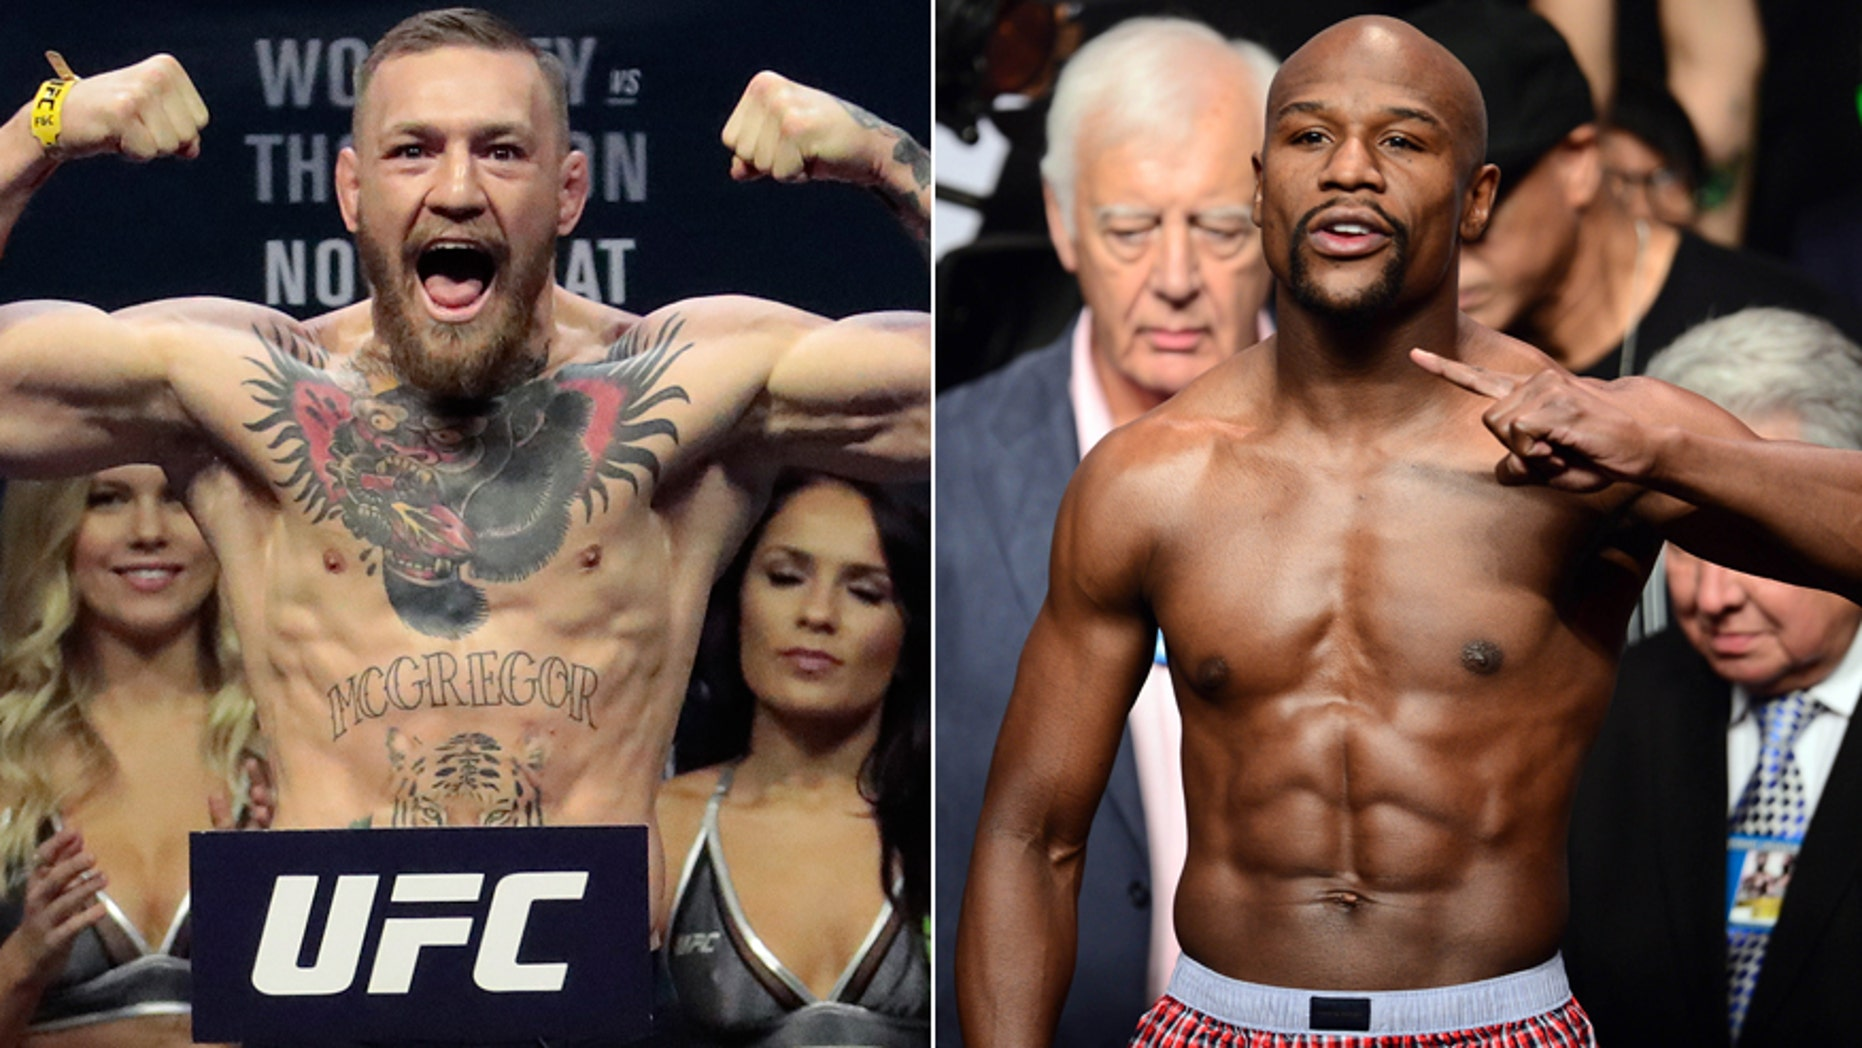 Looks like McGregor and Mayweather will fight again. By strange rules